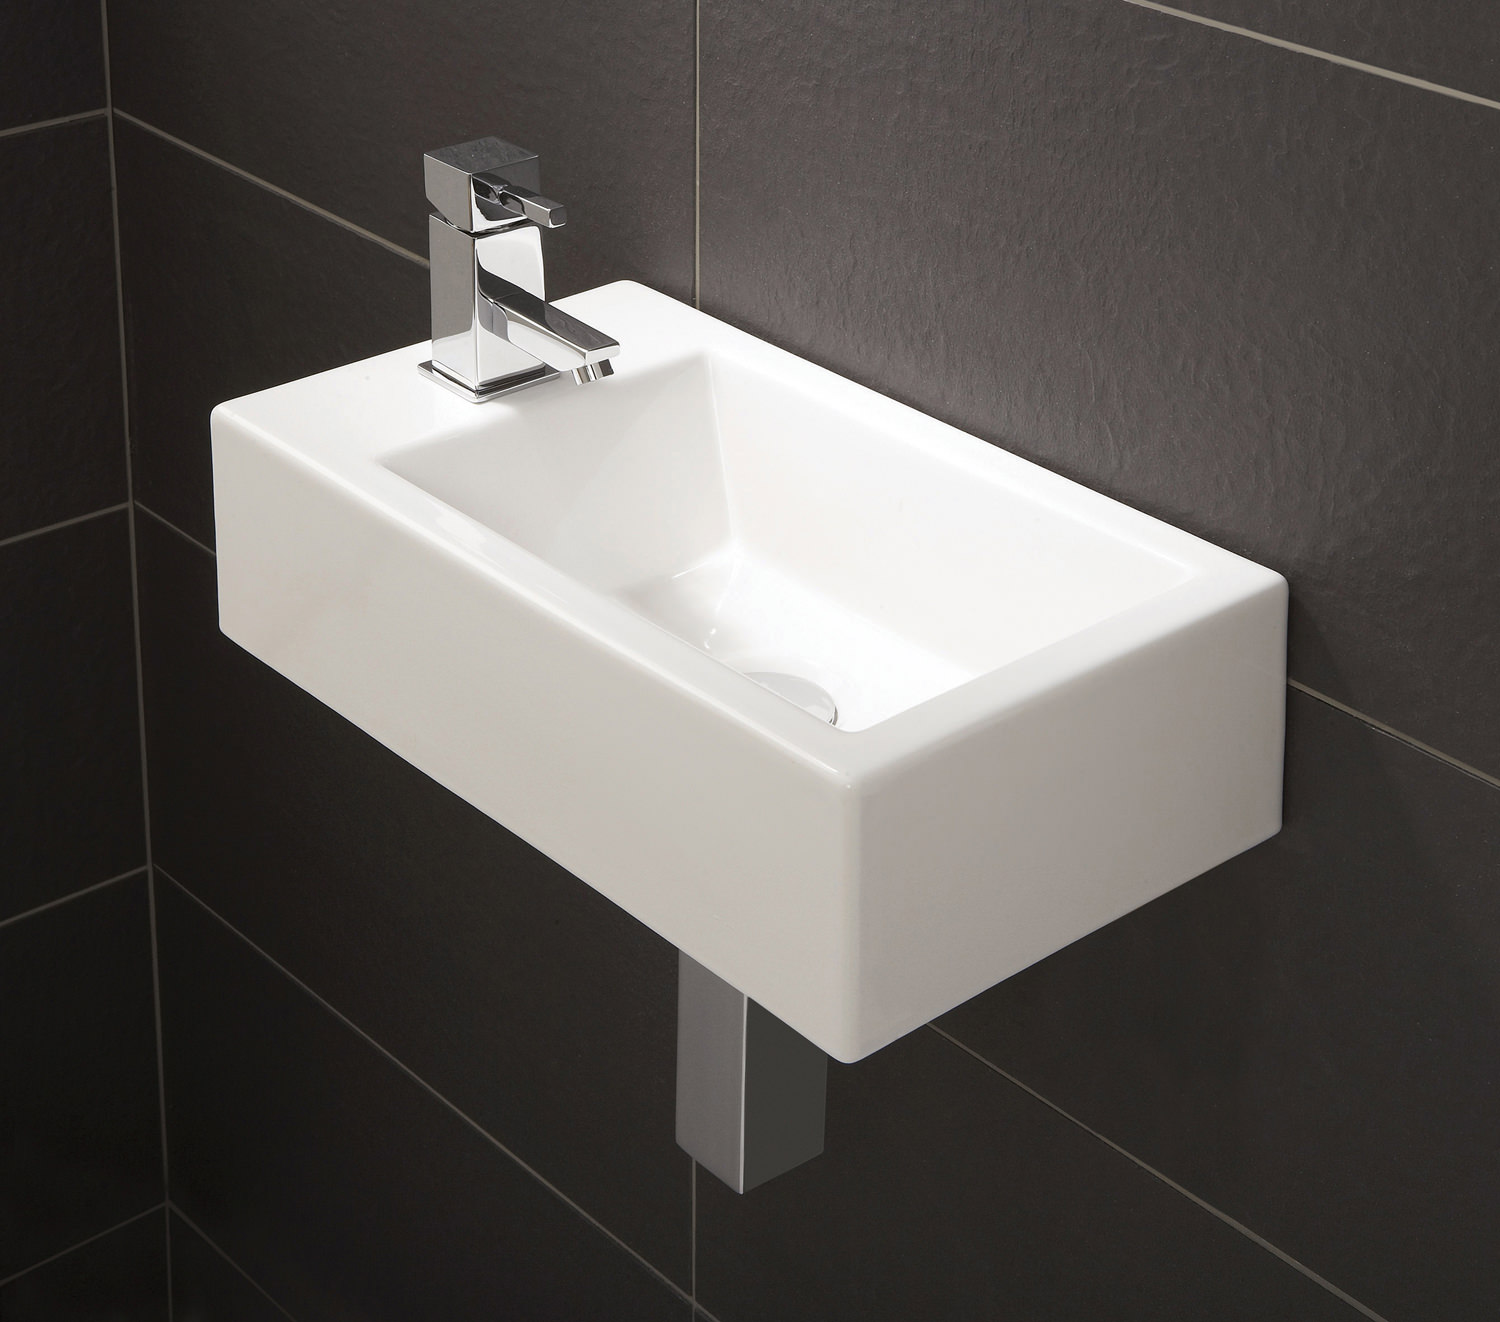 sink basins bathroom hib rialto metro cloakroom basin 440 x 250mm 9770 14415